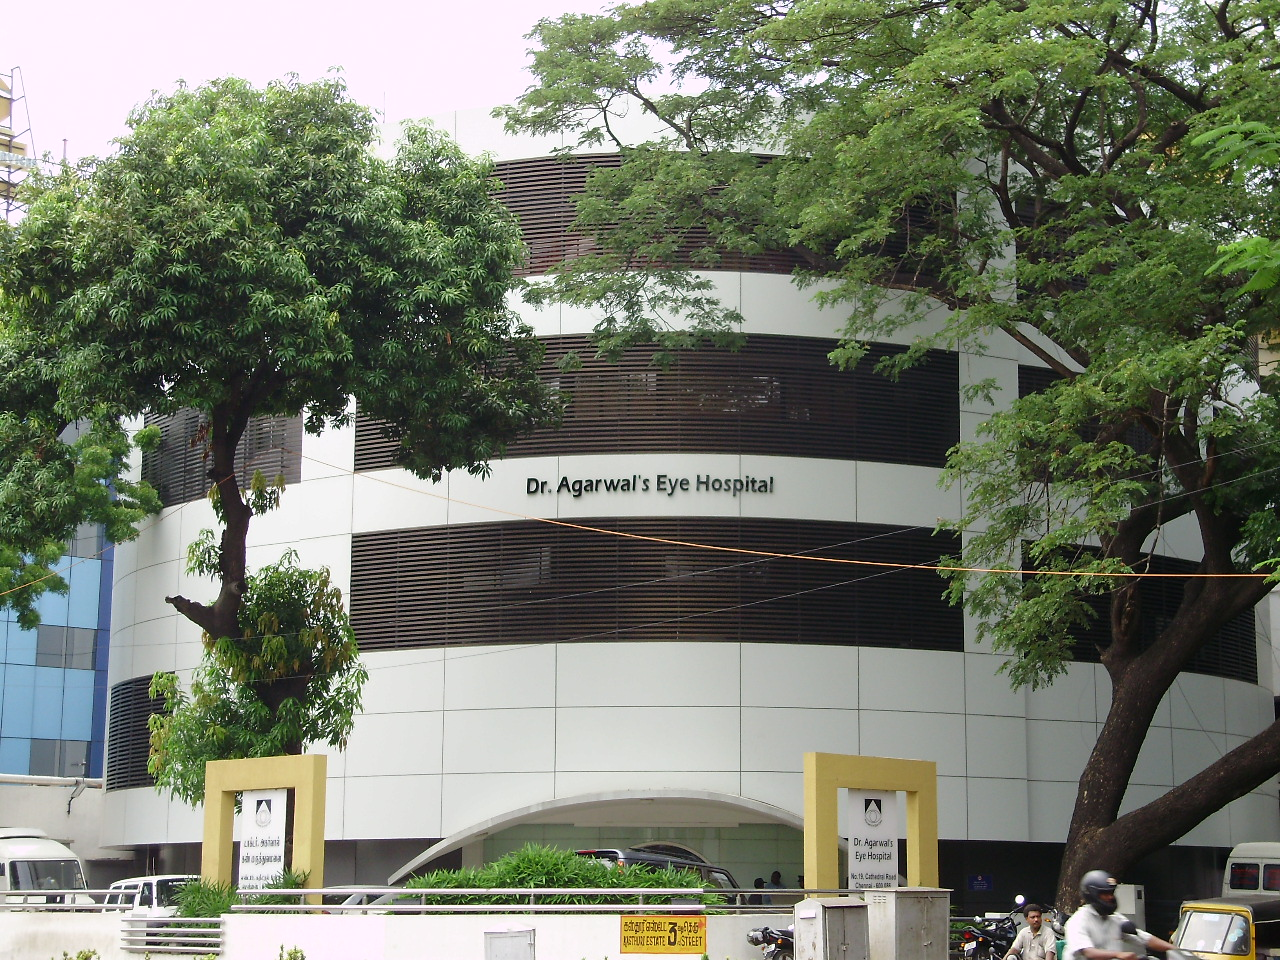 Dr. Agarwal's Eye Hospital is a chain of eye specialty hospitals in India headquartered at Chennai. Photo courtesy: Wikipedia